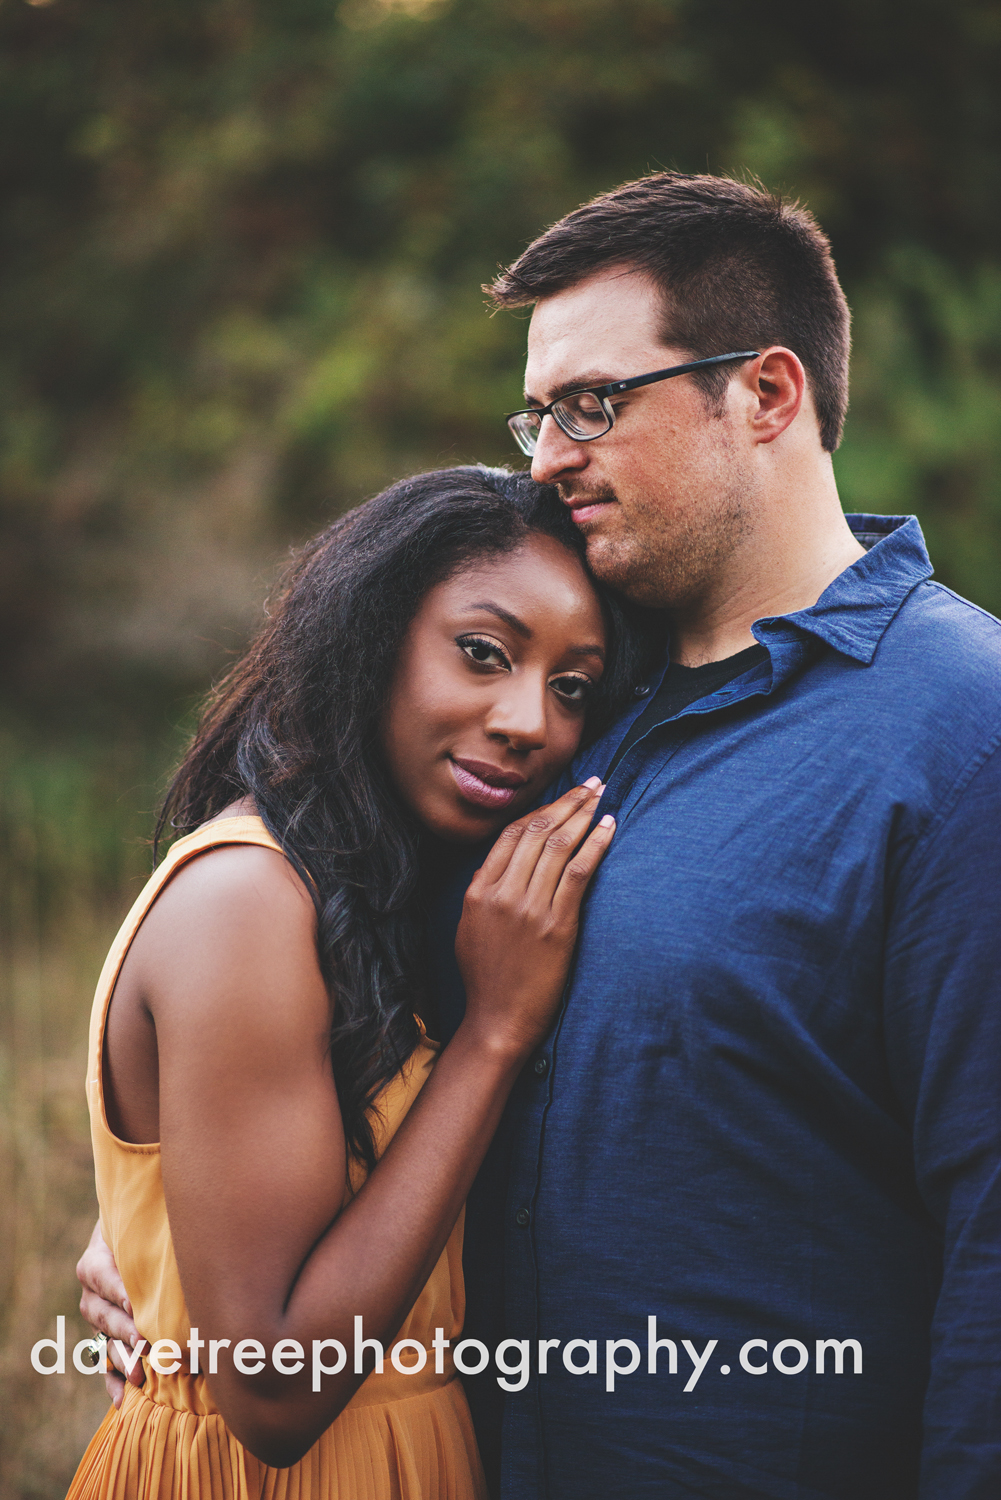 kalamazoo_wedding_photographer_kalamazoo_engagement_photographer_18.jpg